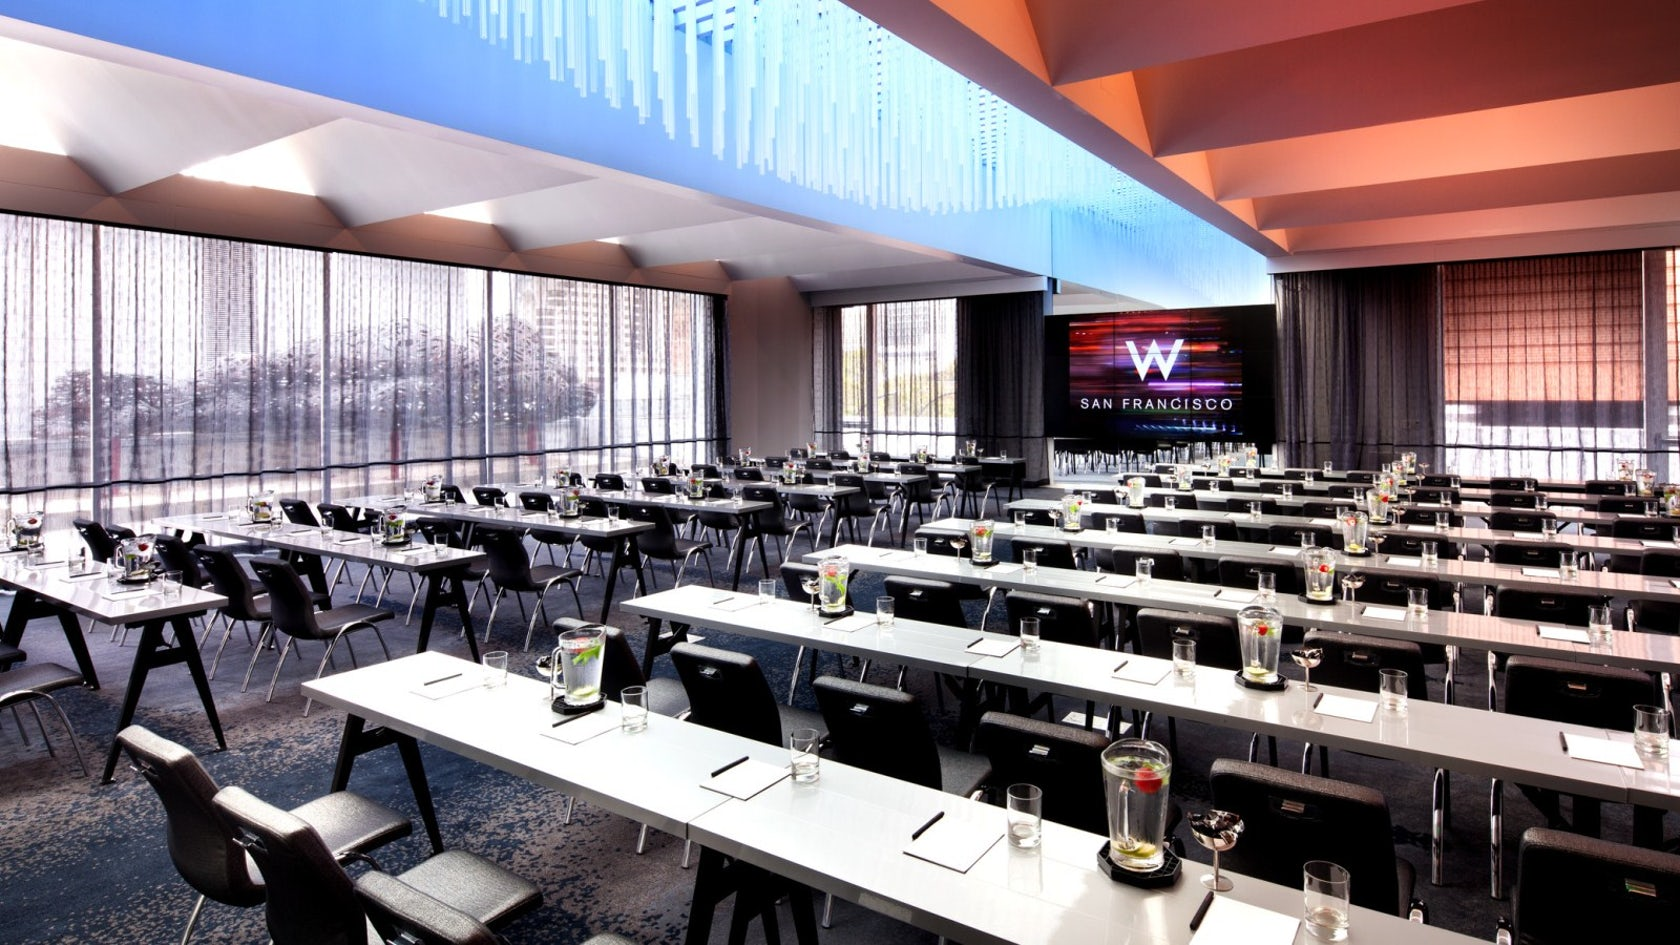 Boston Meeting Space Event Venues: W Hotel, San Francisco